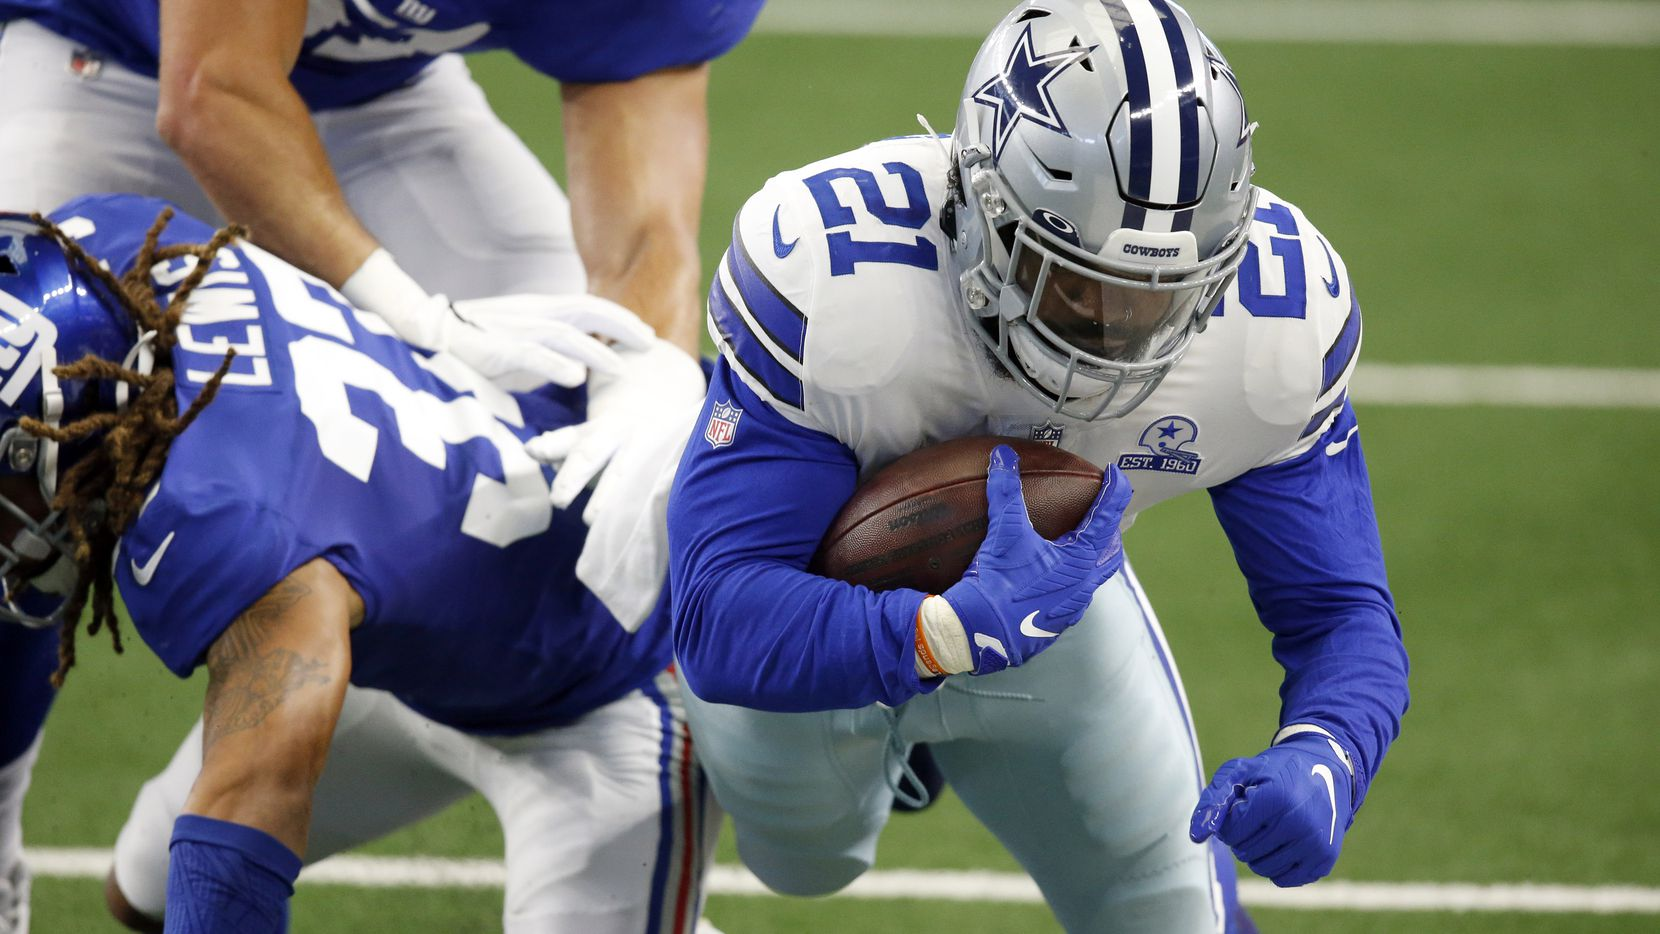 Dallas Cowboys running back Ezekiel Elliott (21) is hit by New York Giants running back Dion Lewis (33) after making a catch during the first quarter at AT&T Stadium Stadium in Arlington, Texas, Sunday, October 11, 2020.